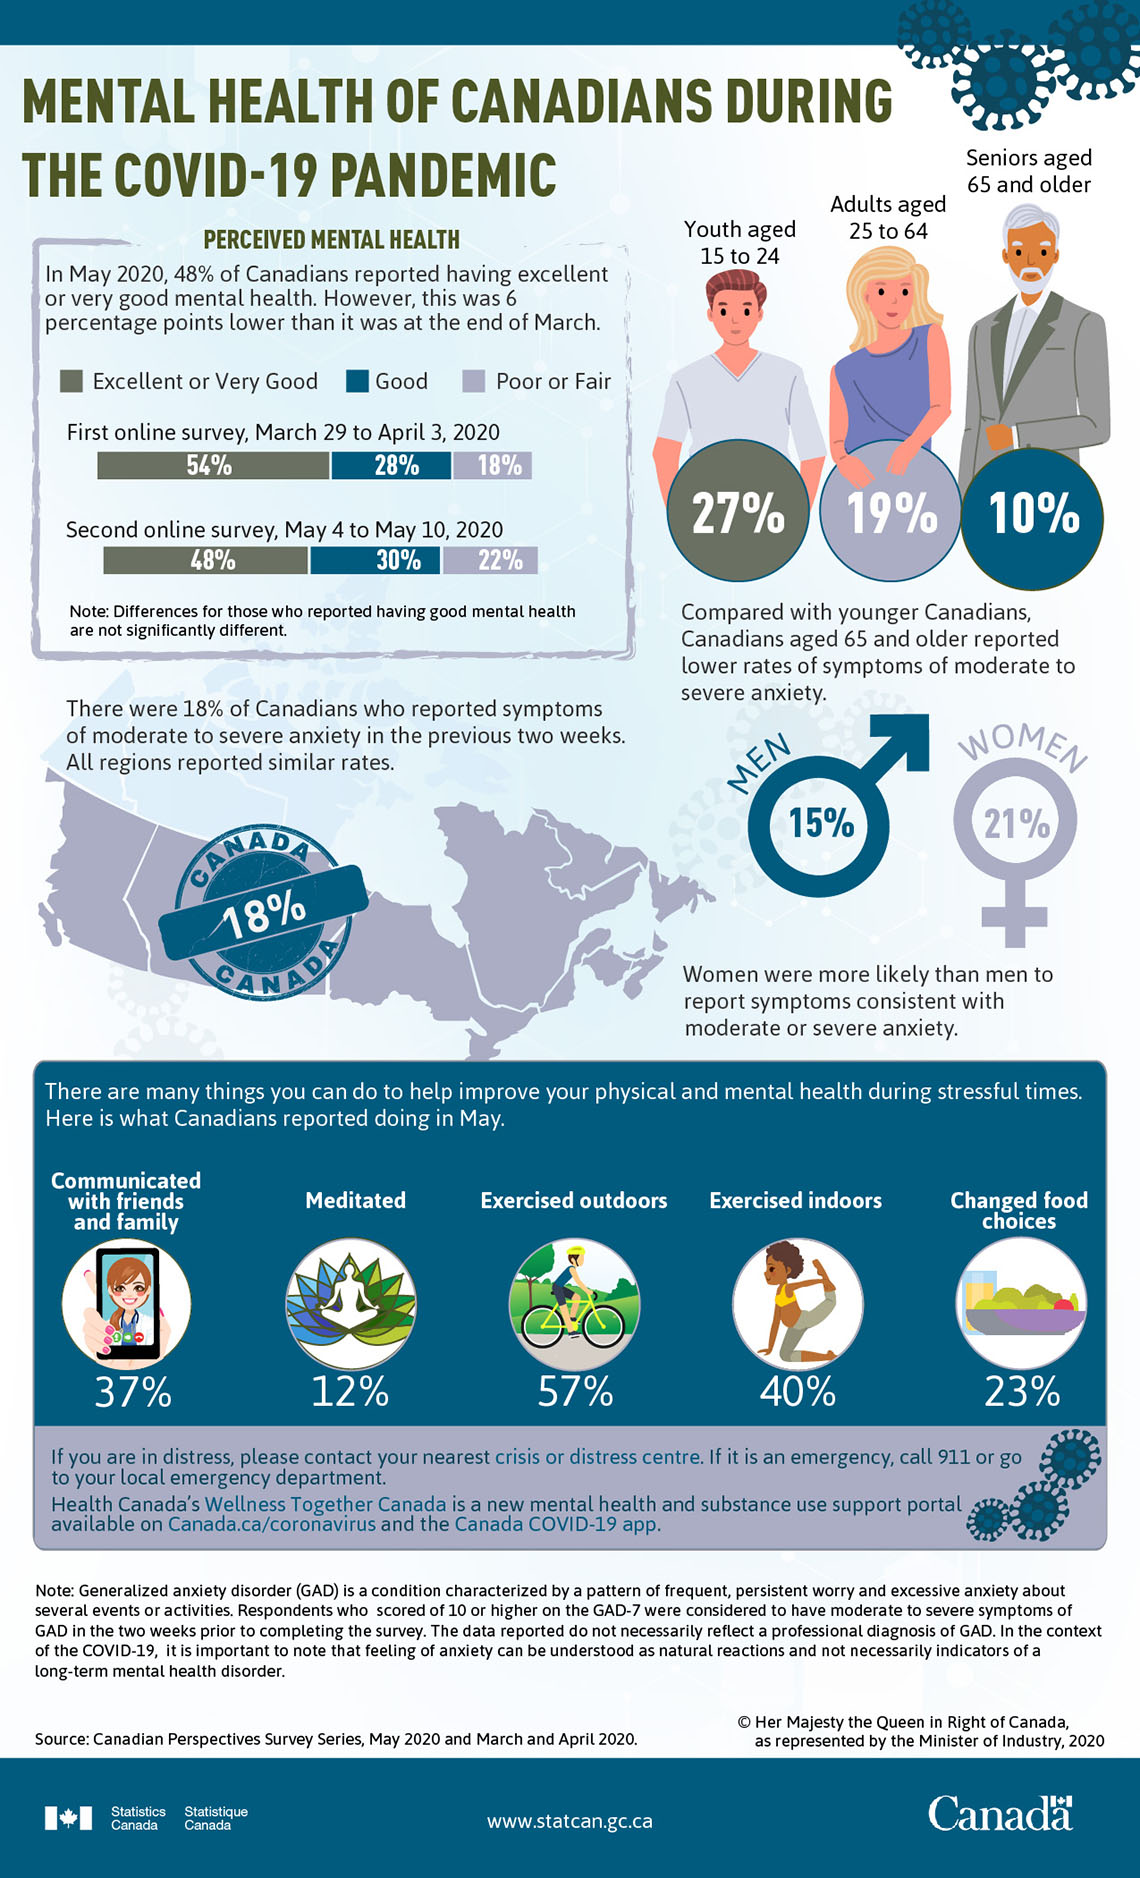 Infographic: Mental health of Canadians during the COVID-19 pandemic